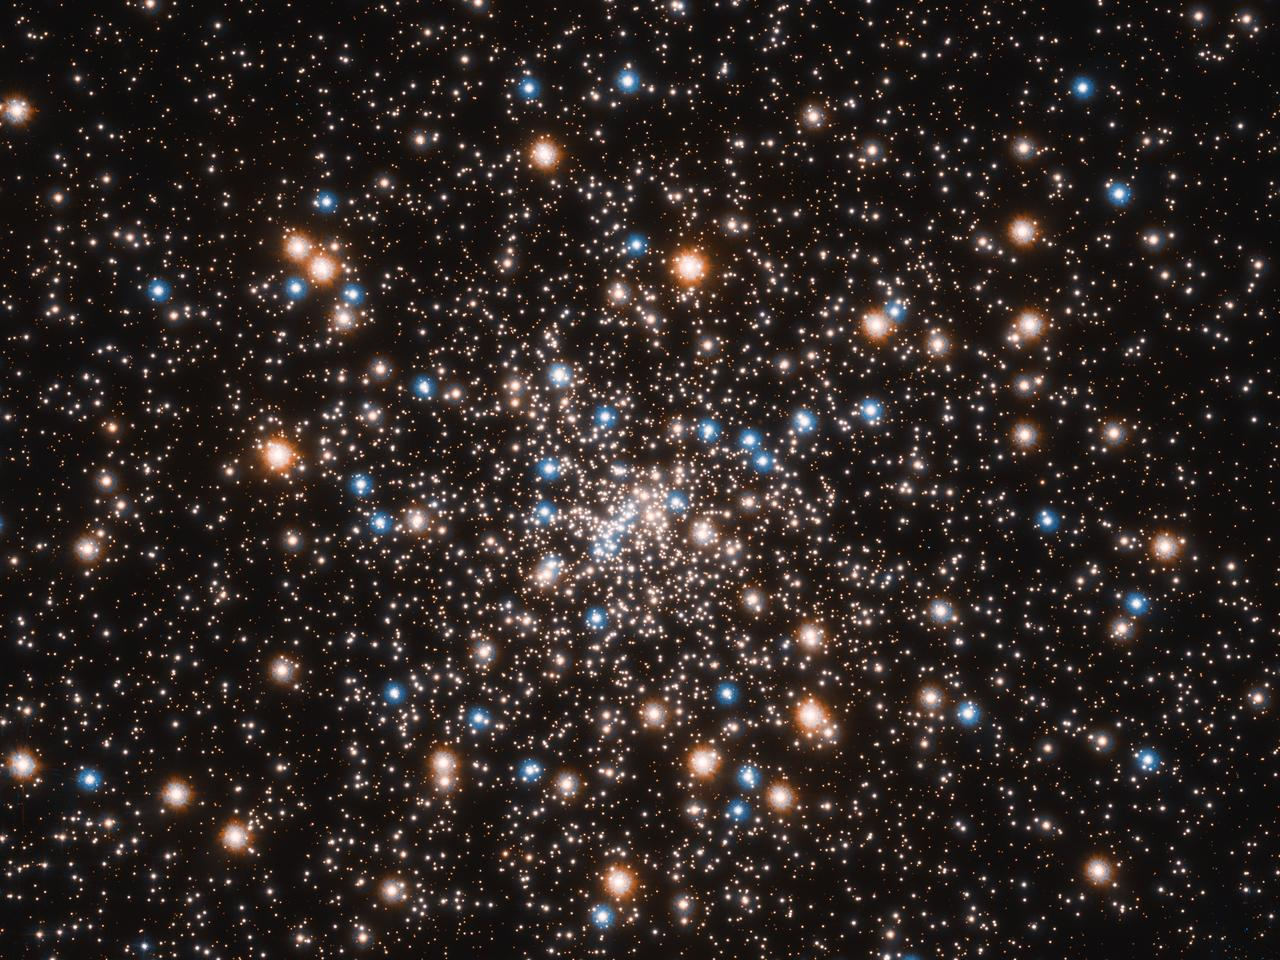 Globular cluster NGC 6397, where Hubble has now found evidence for a swarm of small black holes